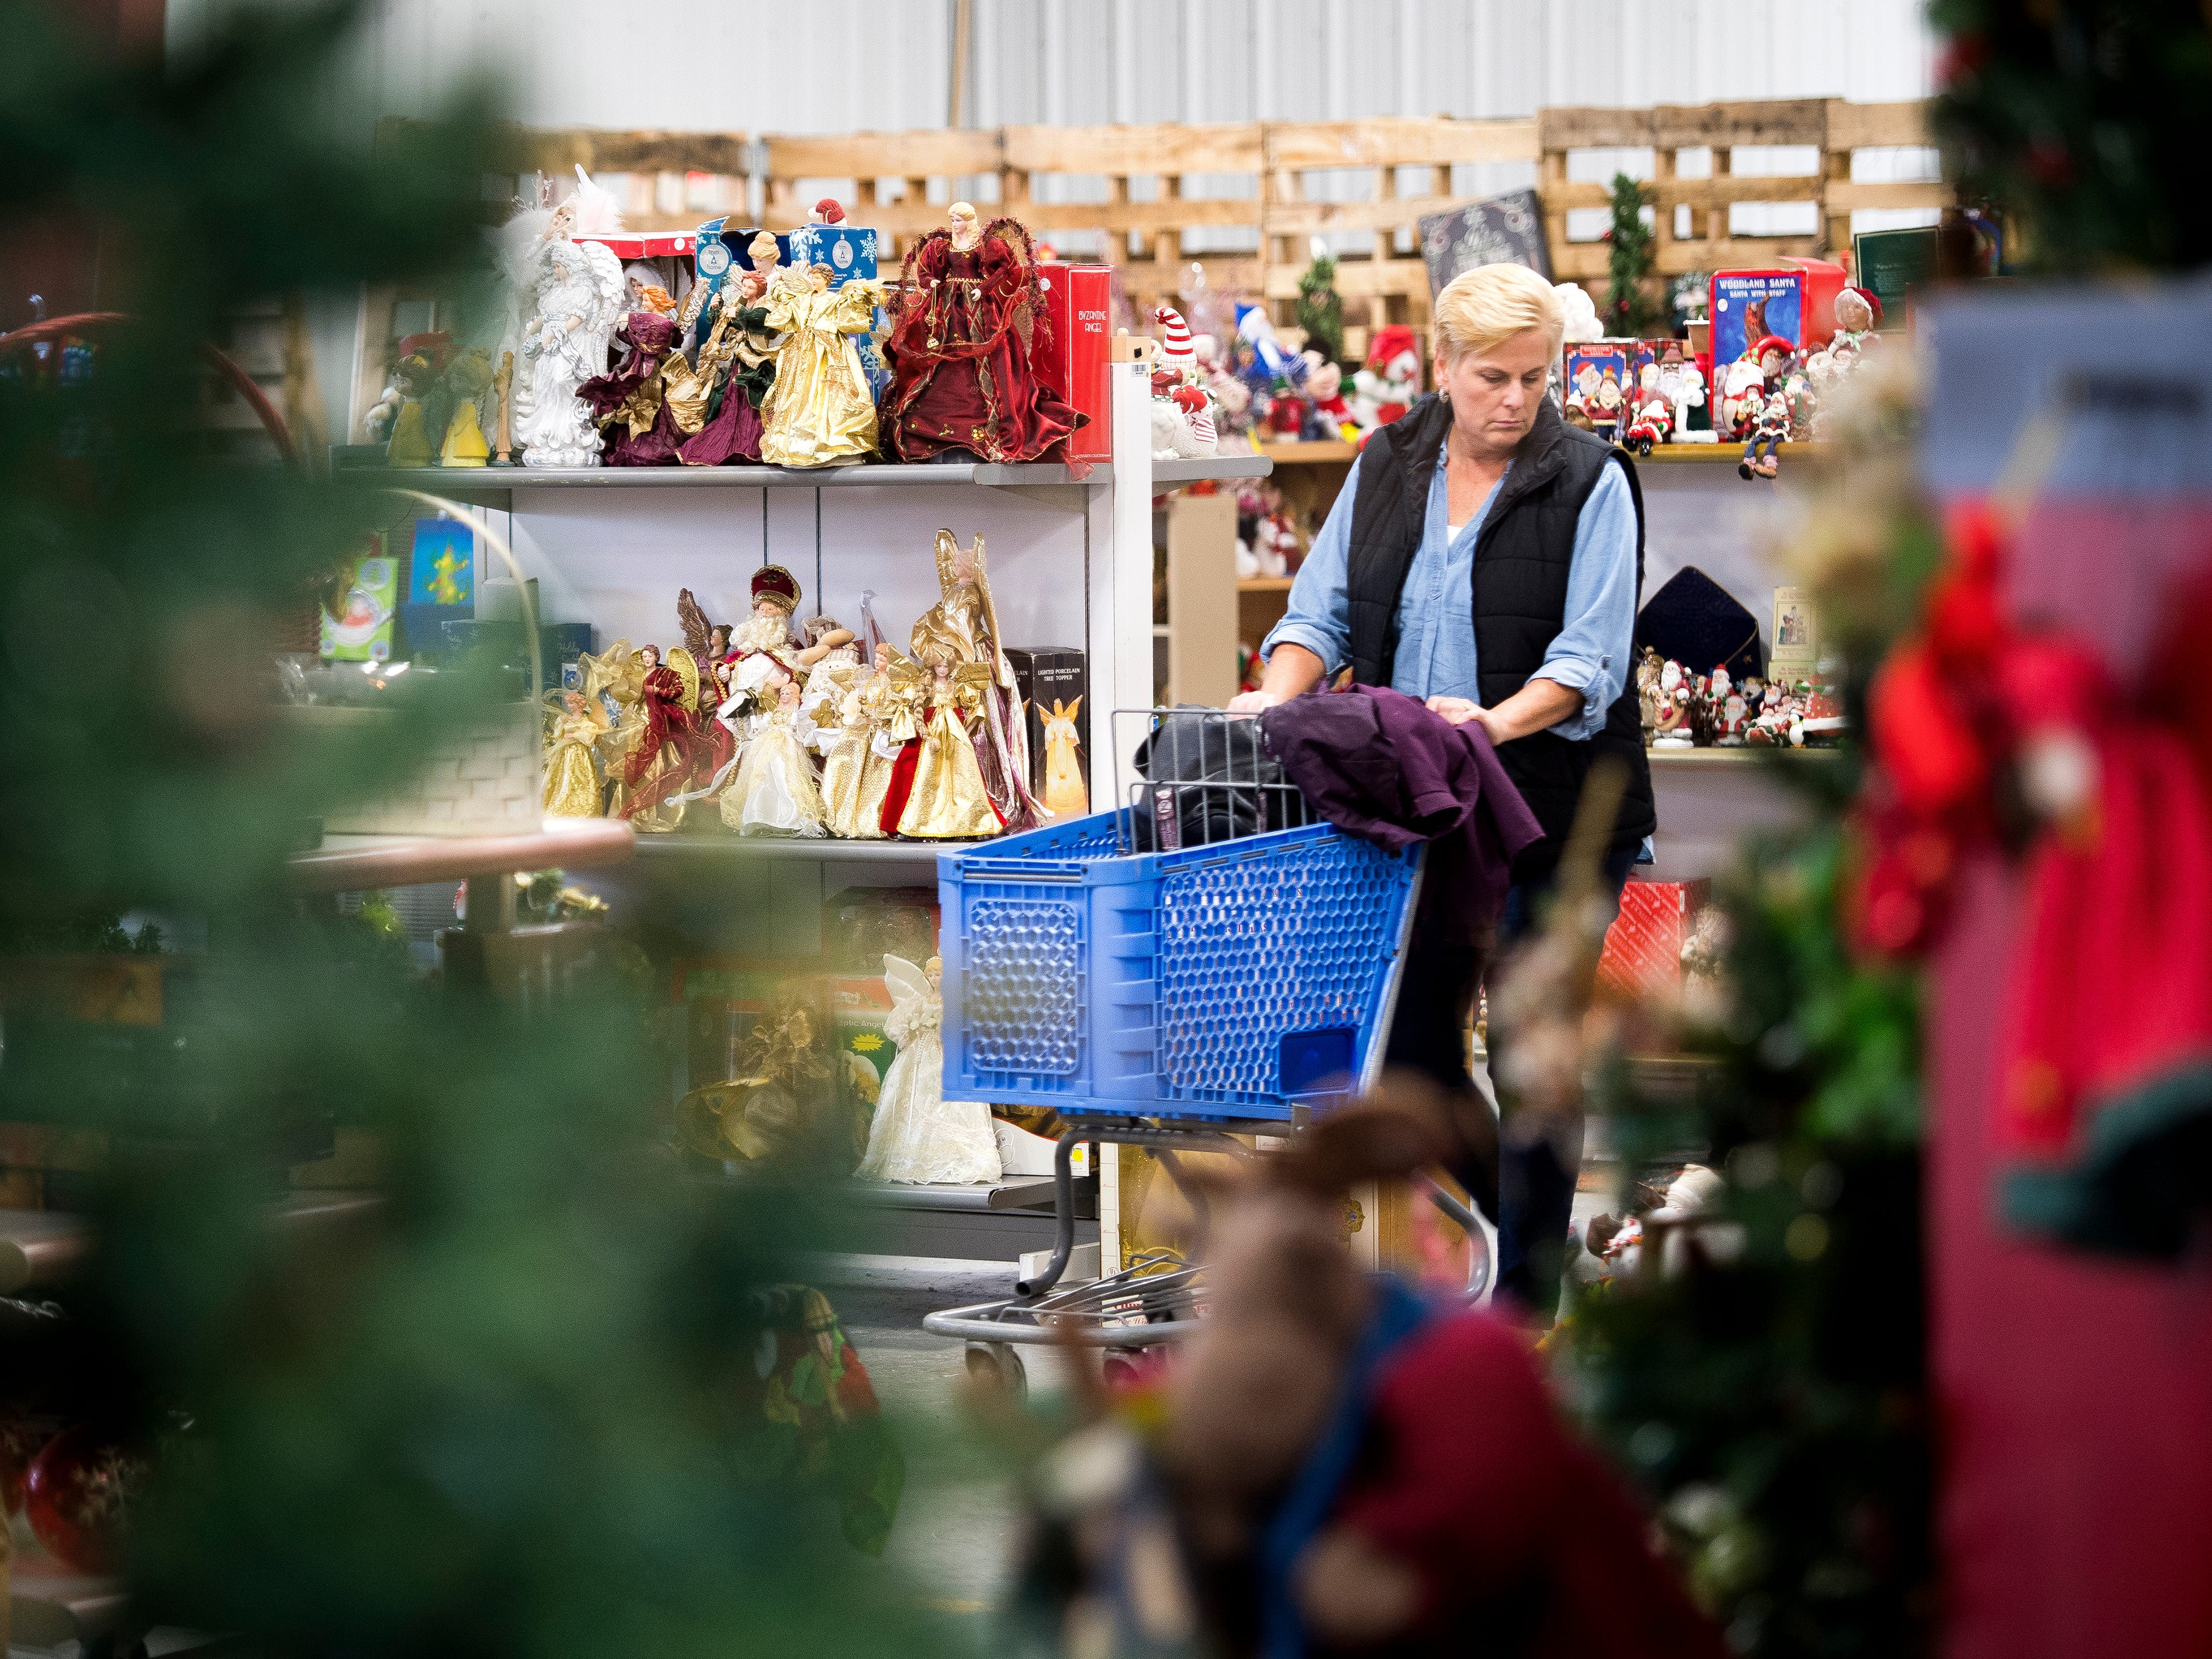 A customer browses Christmas decorations for sale at the KARM Christmas Store located at 9629 Parkside Drive in Knoxville on Tuesday, November 13, 2018.